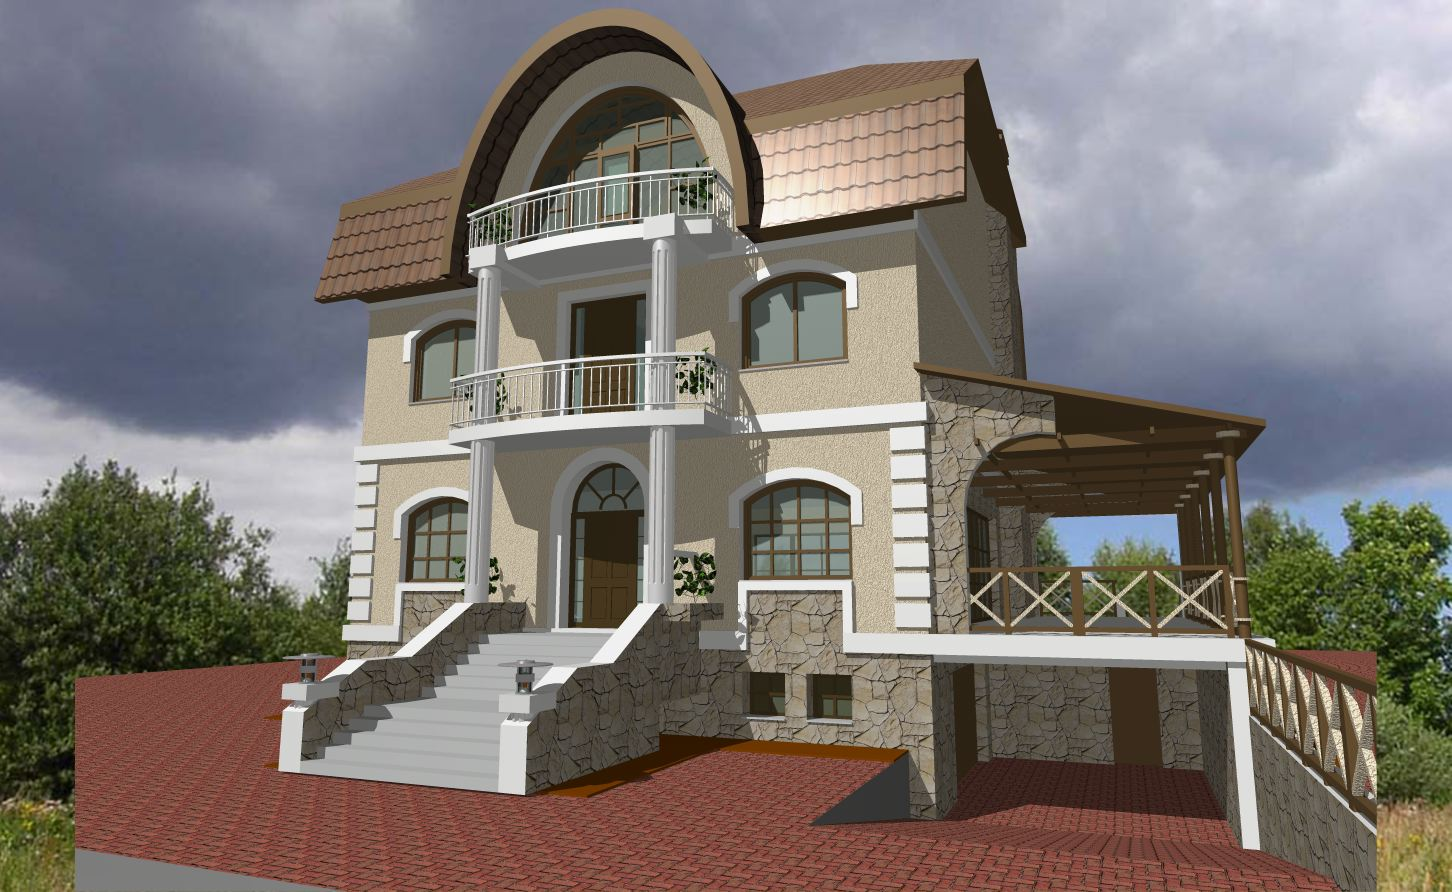 Foundation dezin decor exterior elevations view 39 s for Home exterior design india residence houses